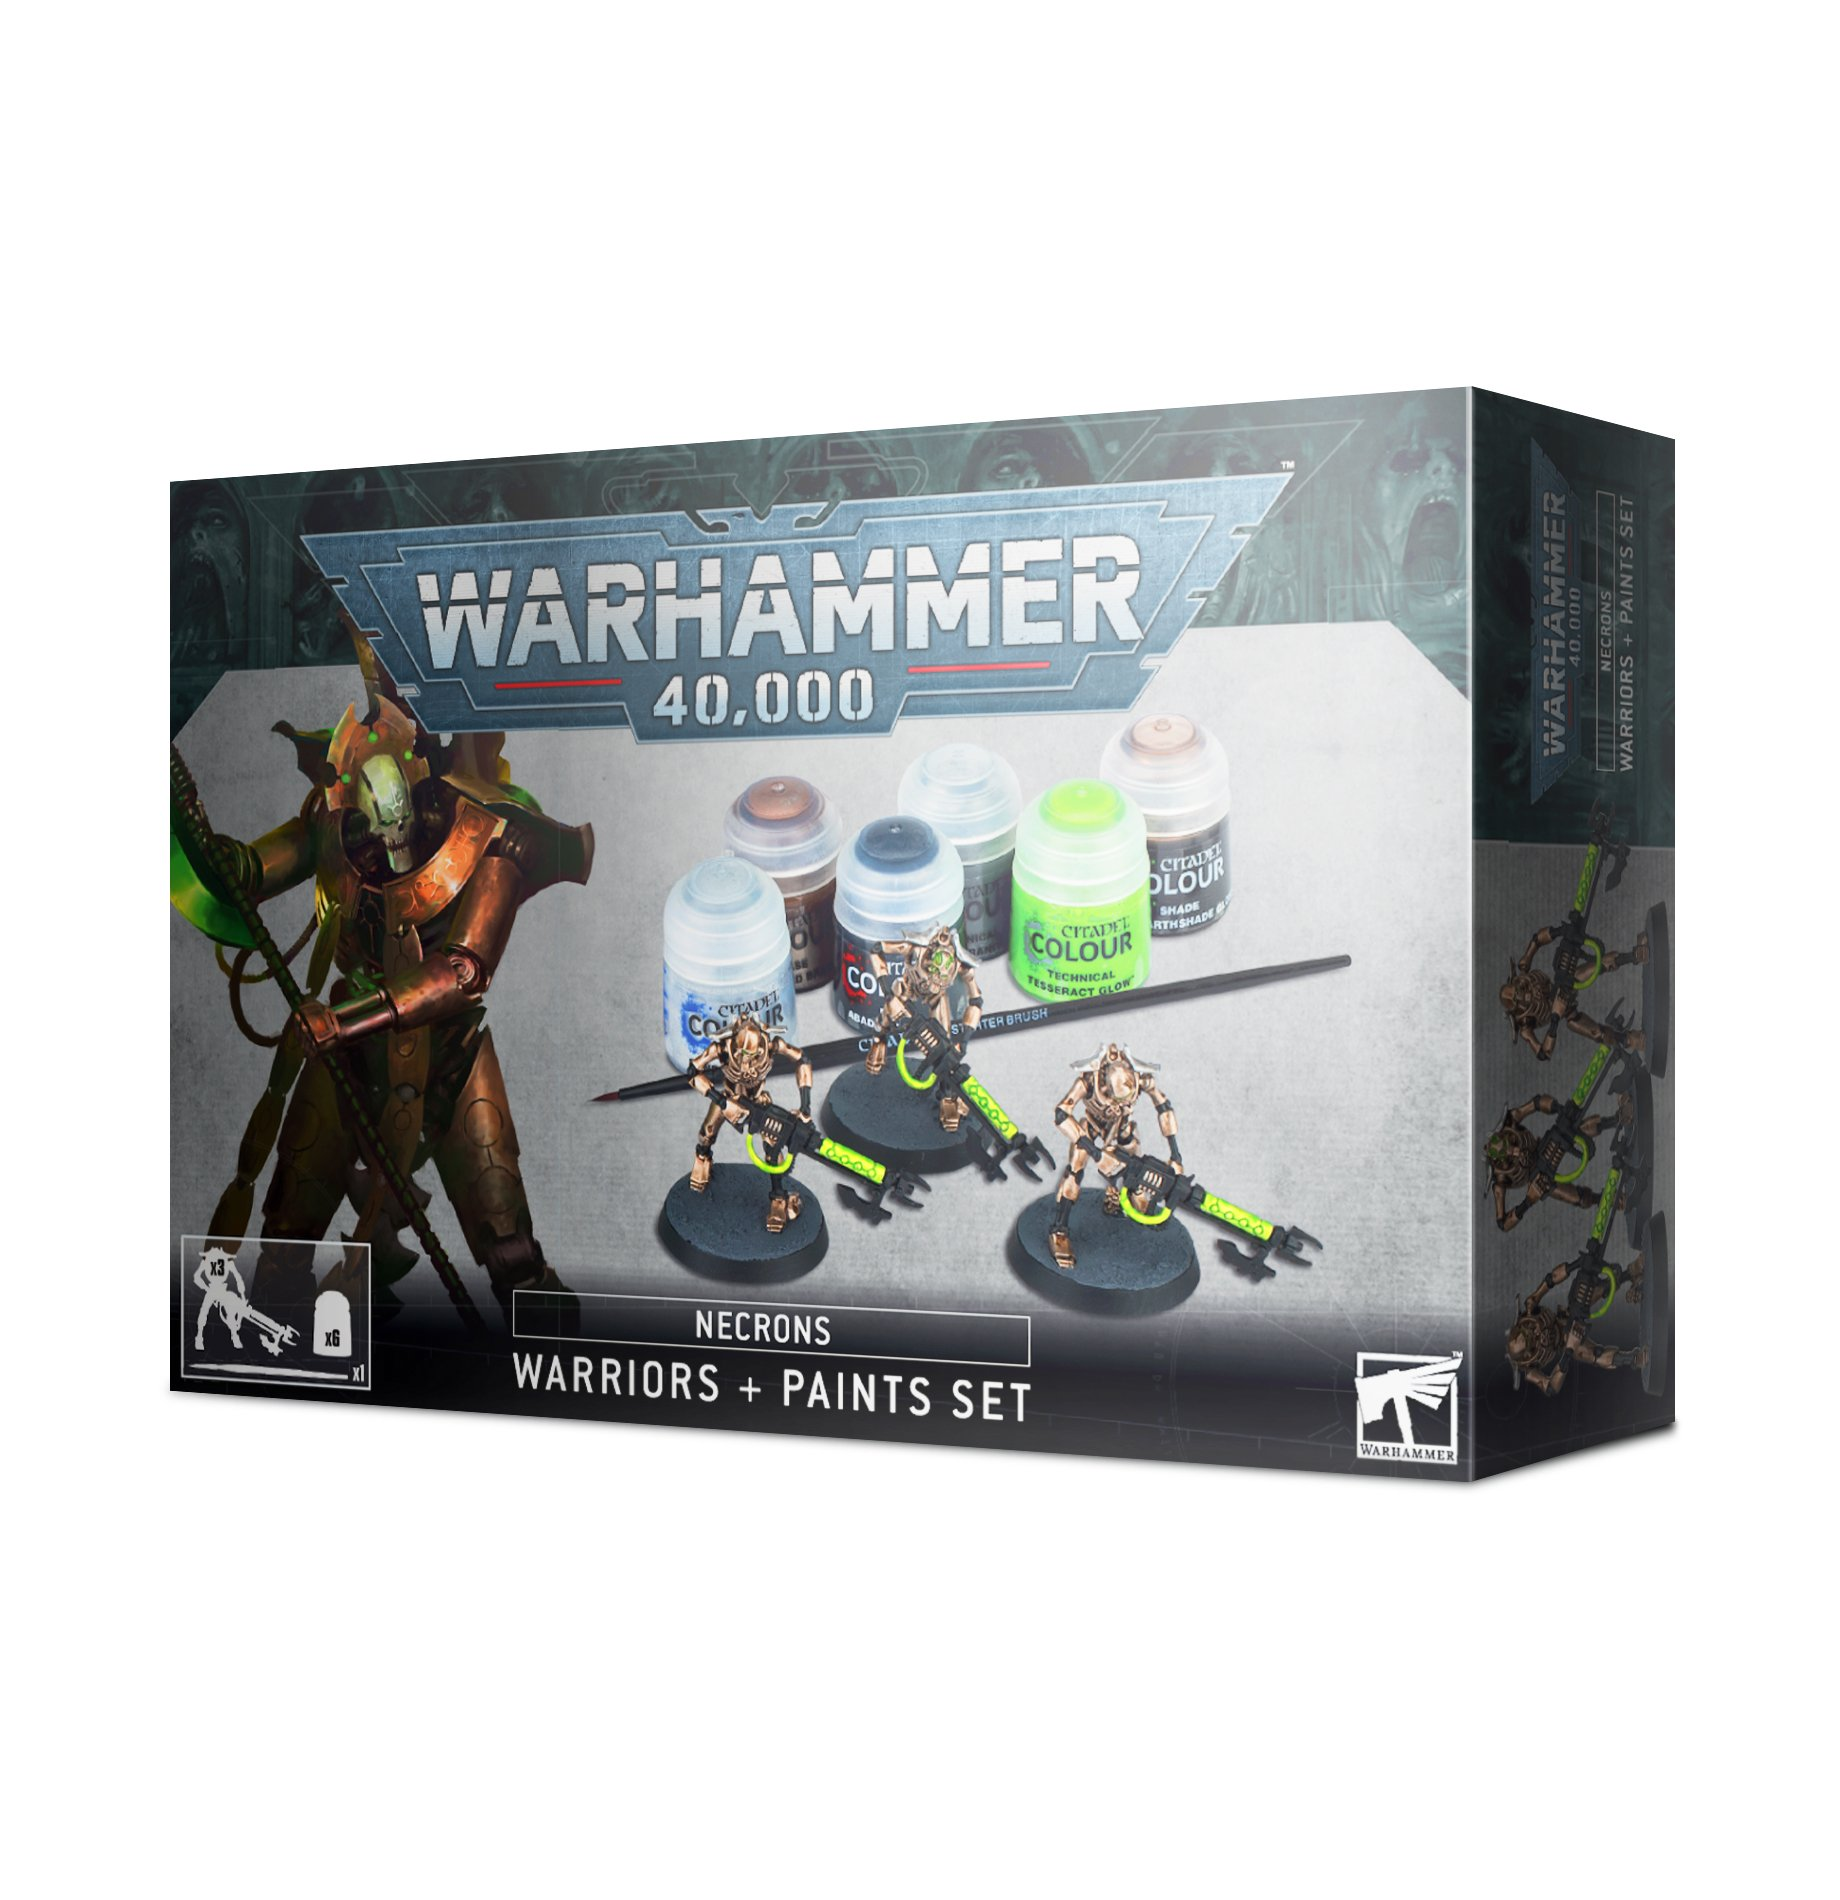 Warhammer 40,000: Necrons Warriors and Paint Set